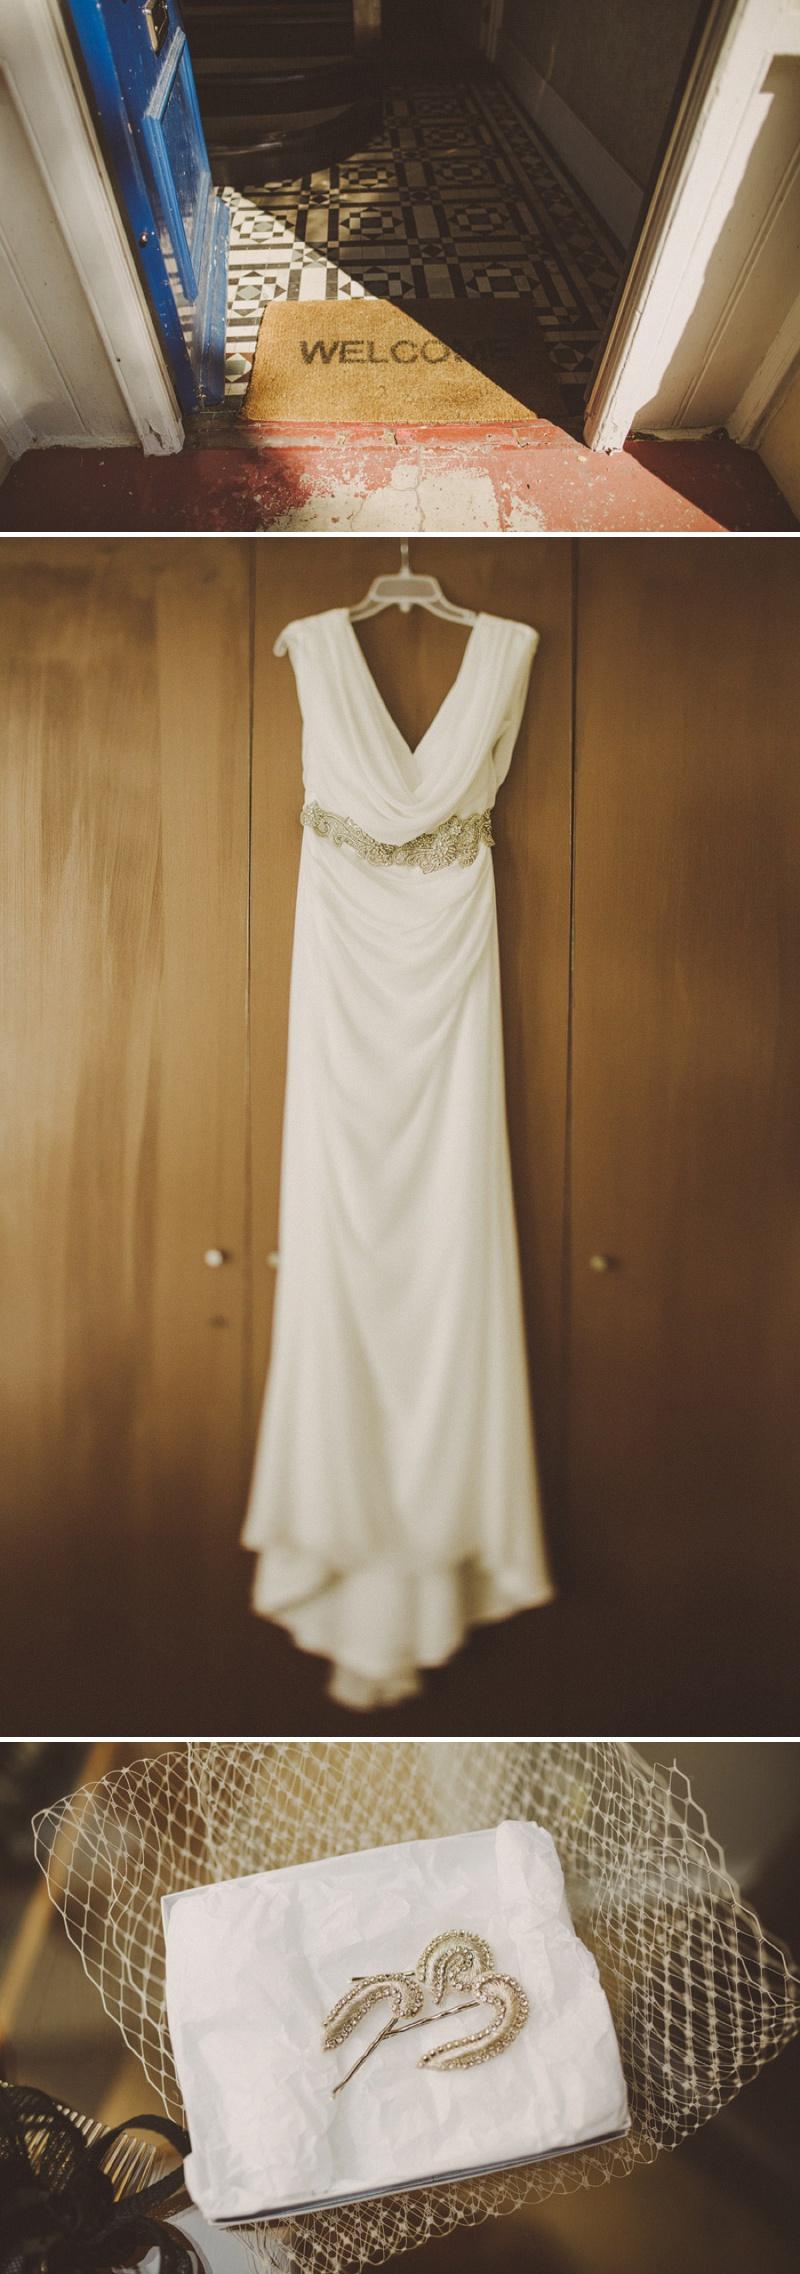 A hip city wedding held at an power station art gallery in East London with a Cymbeline 1930s inspired dress and a white rose bouquet with photography by Ed Peers. 0002 Your Love Keeps Lifting Me Higher.